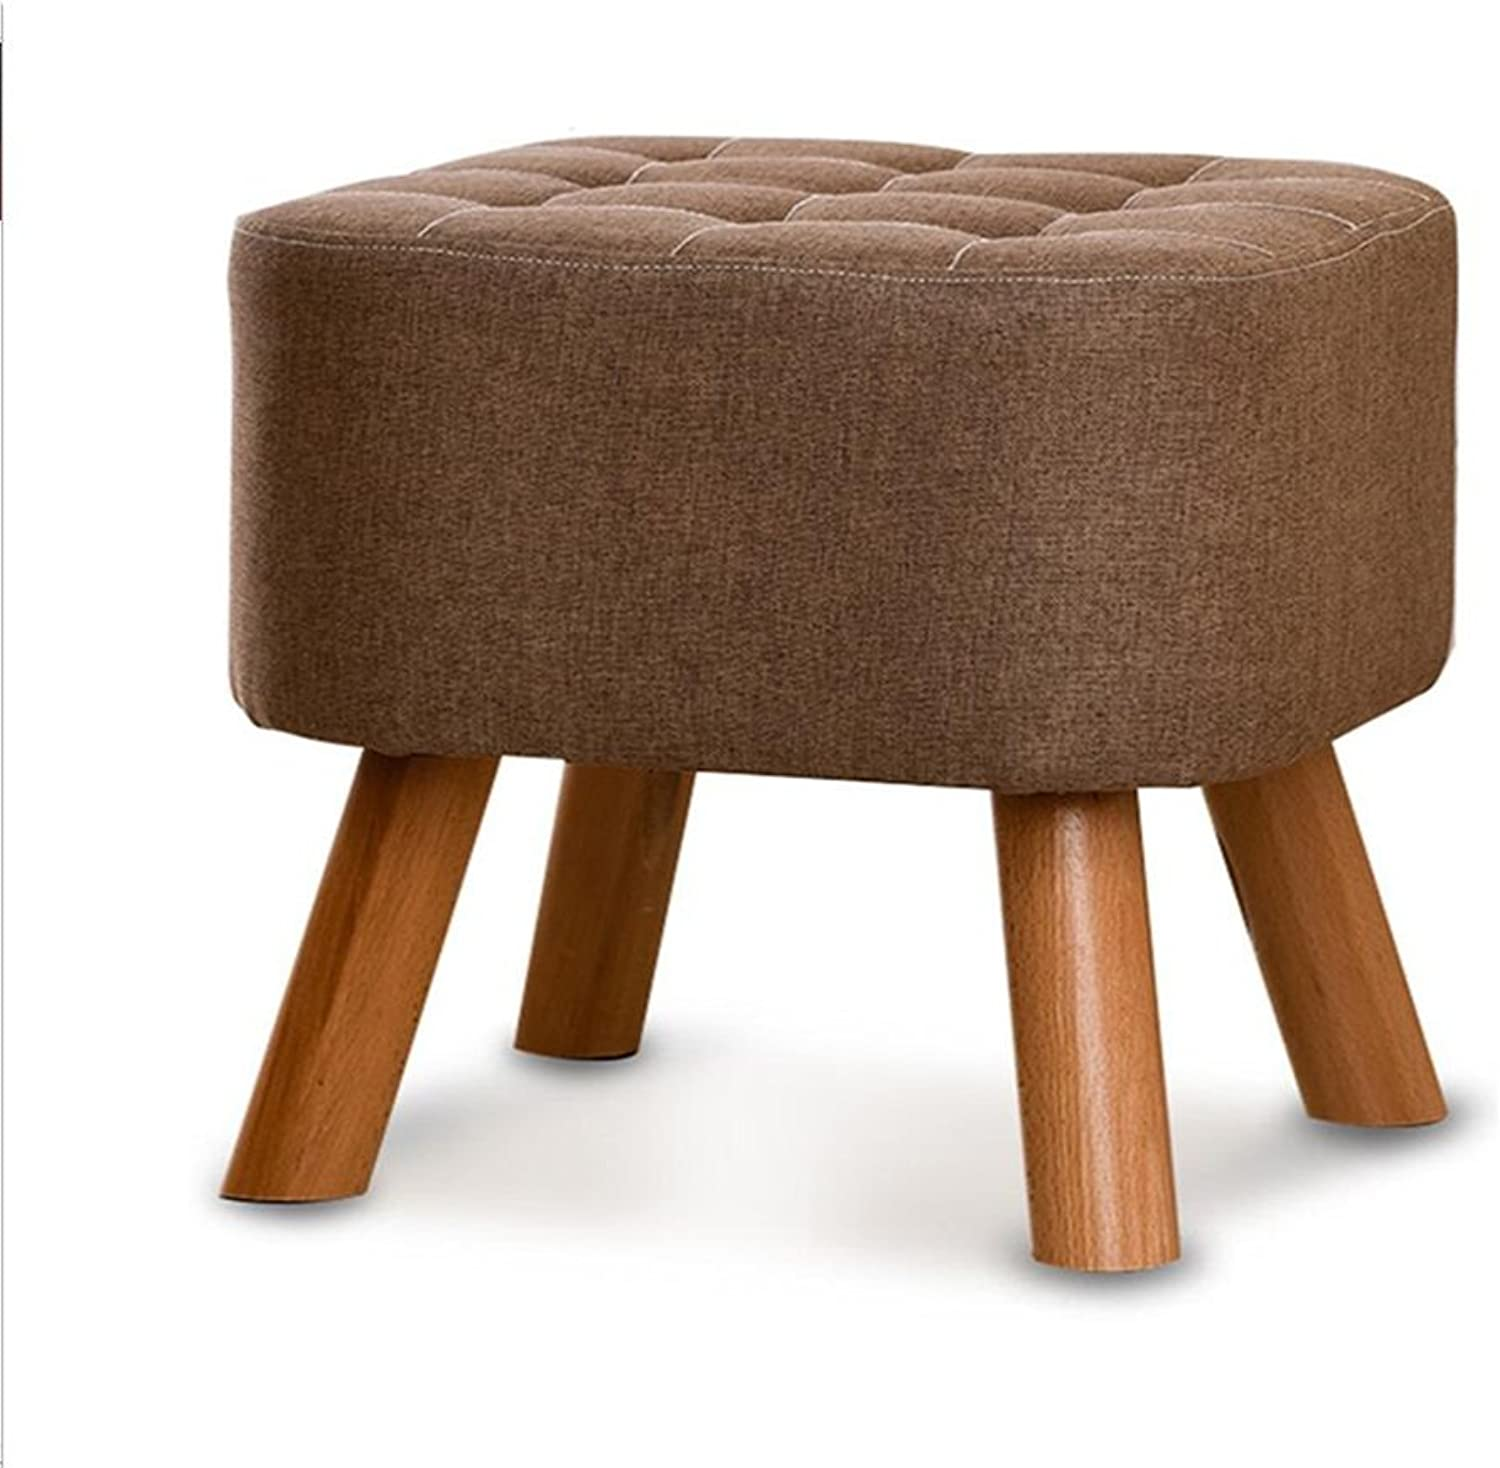 A-Fort DLDL Fashion Creative Makeup Stool shoes Bench (color   Brown)